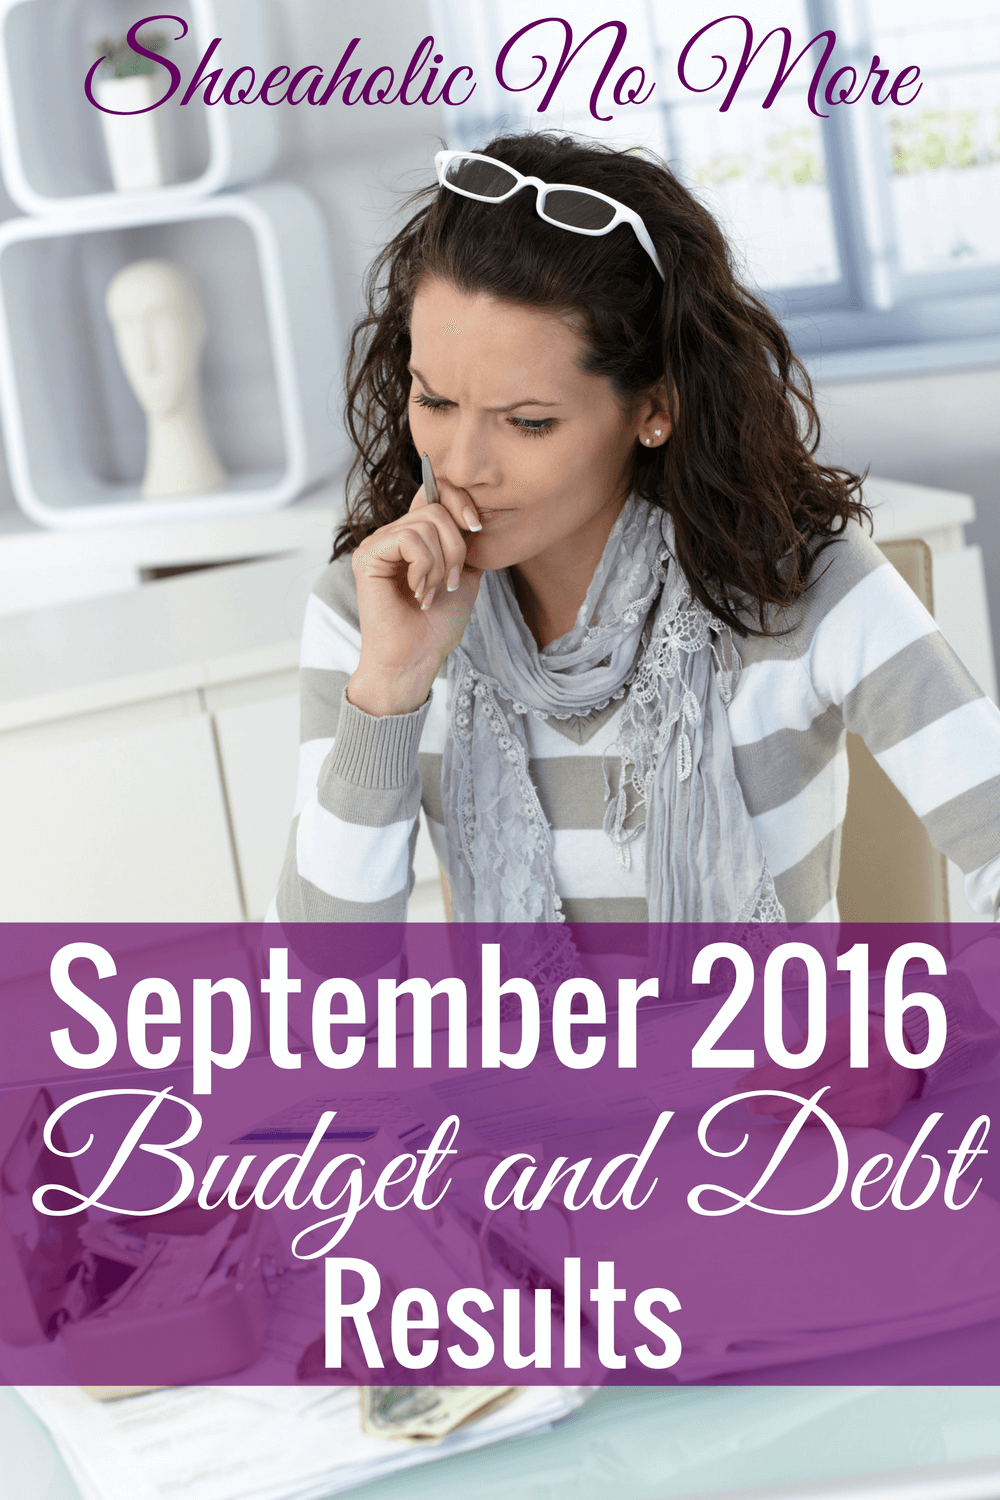 September flew by in a blur, but I still managed to make some progress with my debt payoff and savings goals.